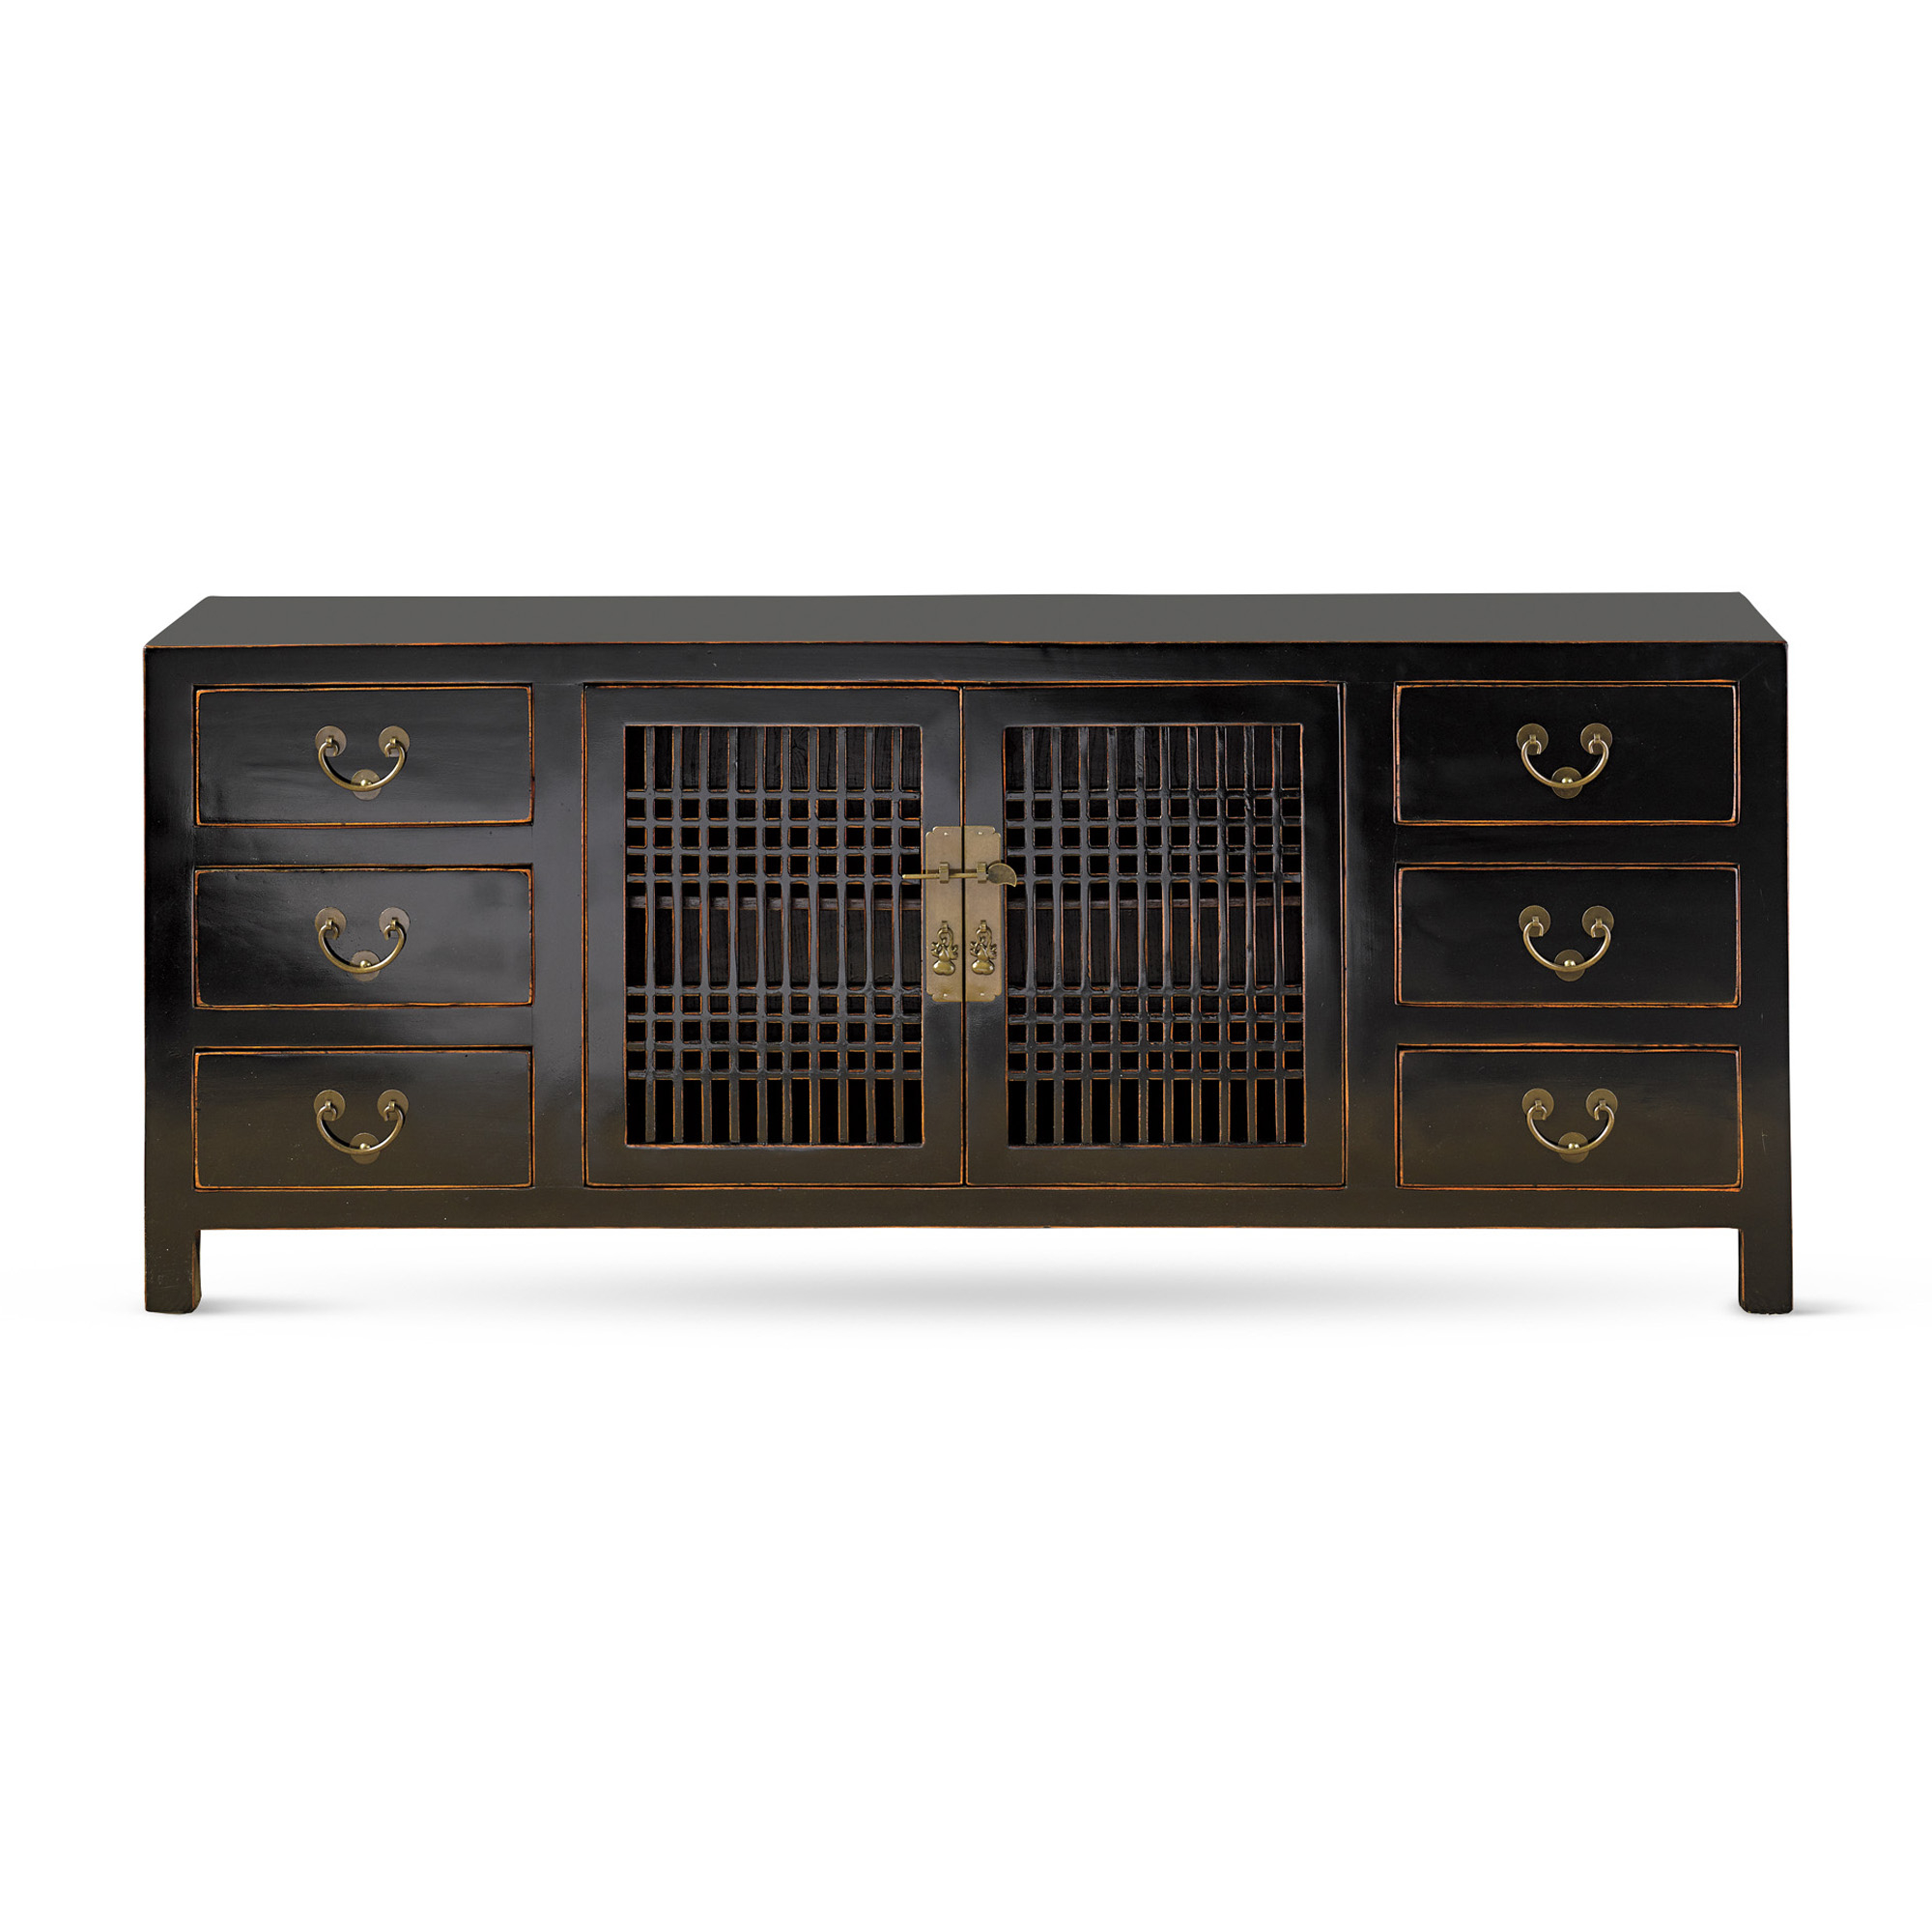 Yating Lacquer Slatted Doors Console